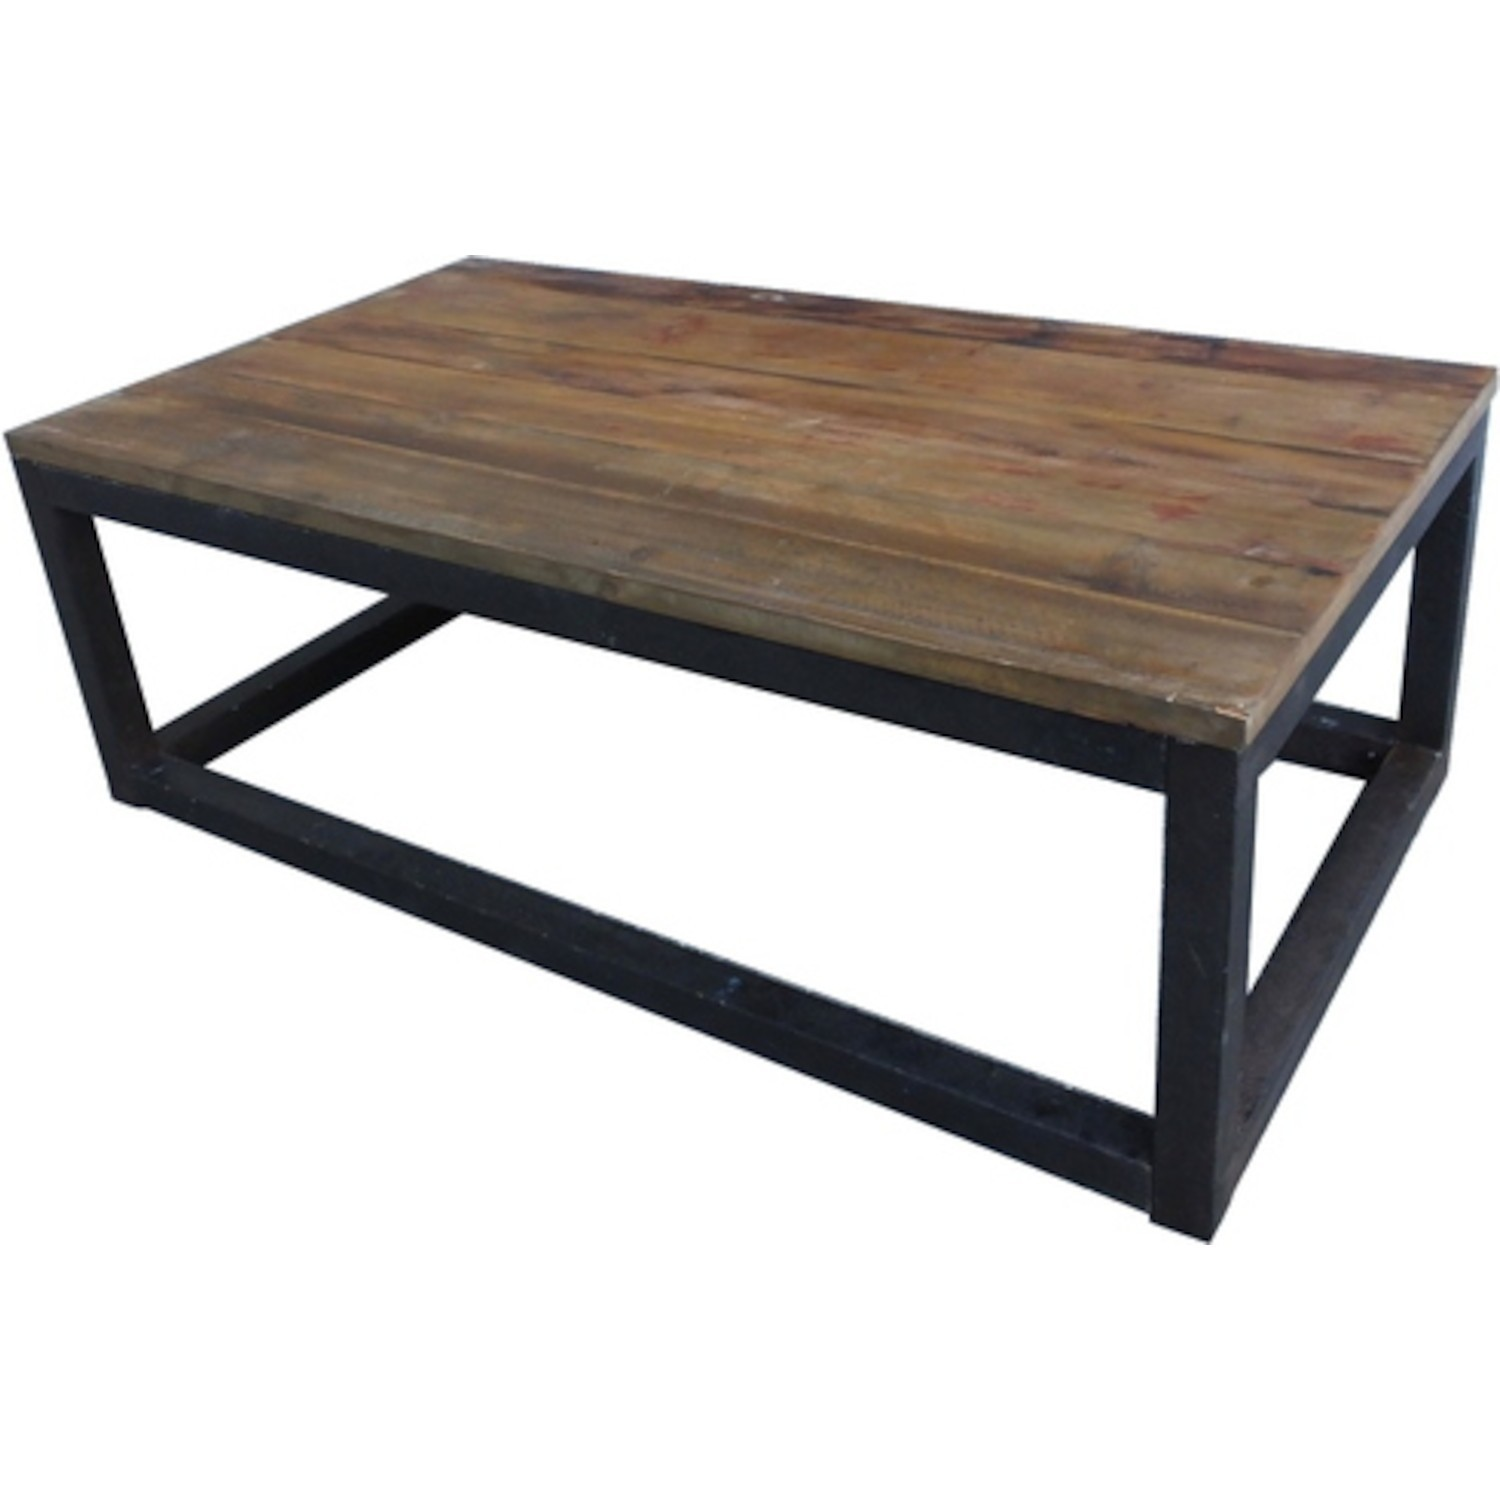 Table basse fait maison home design architecture for Table basse fait maison